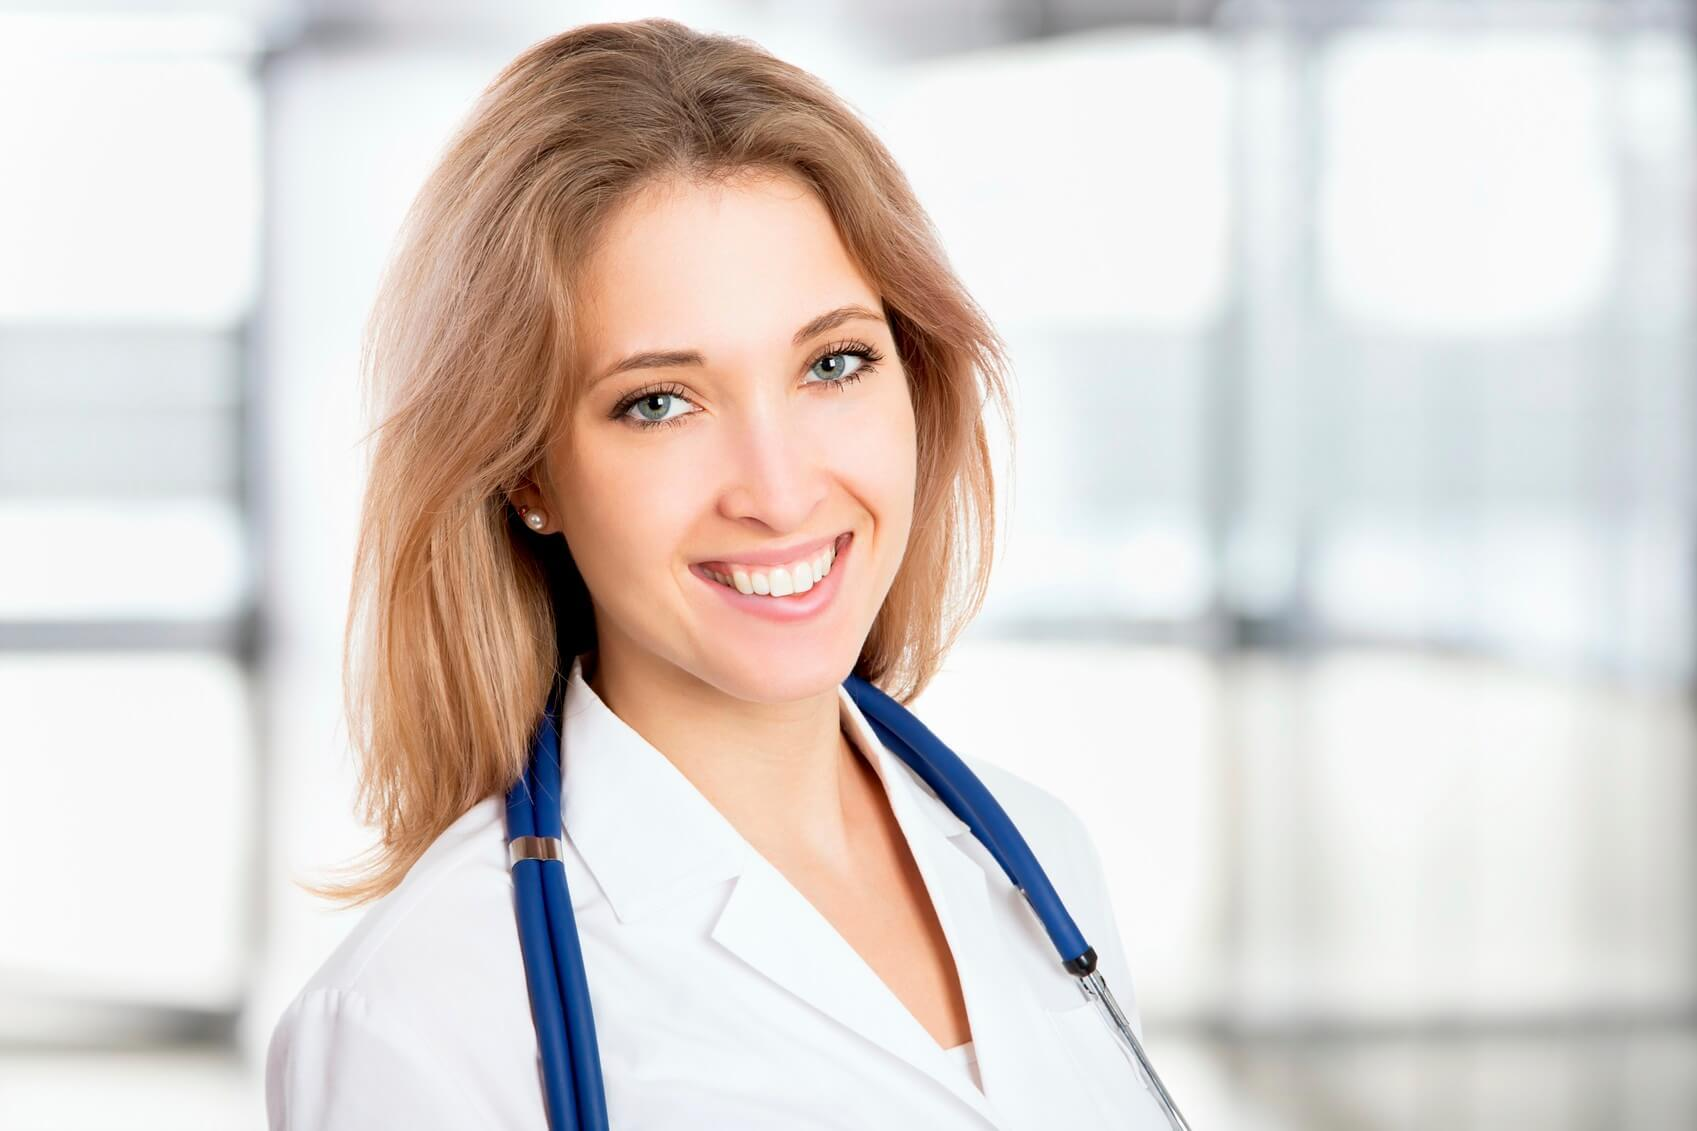 Female Physician in article about dermatologist shortage in Saudi Arabia